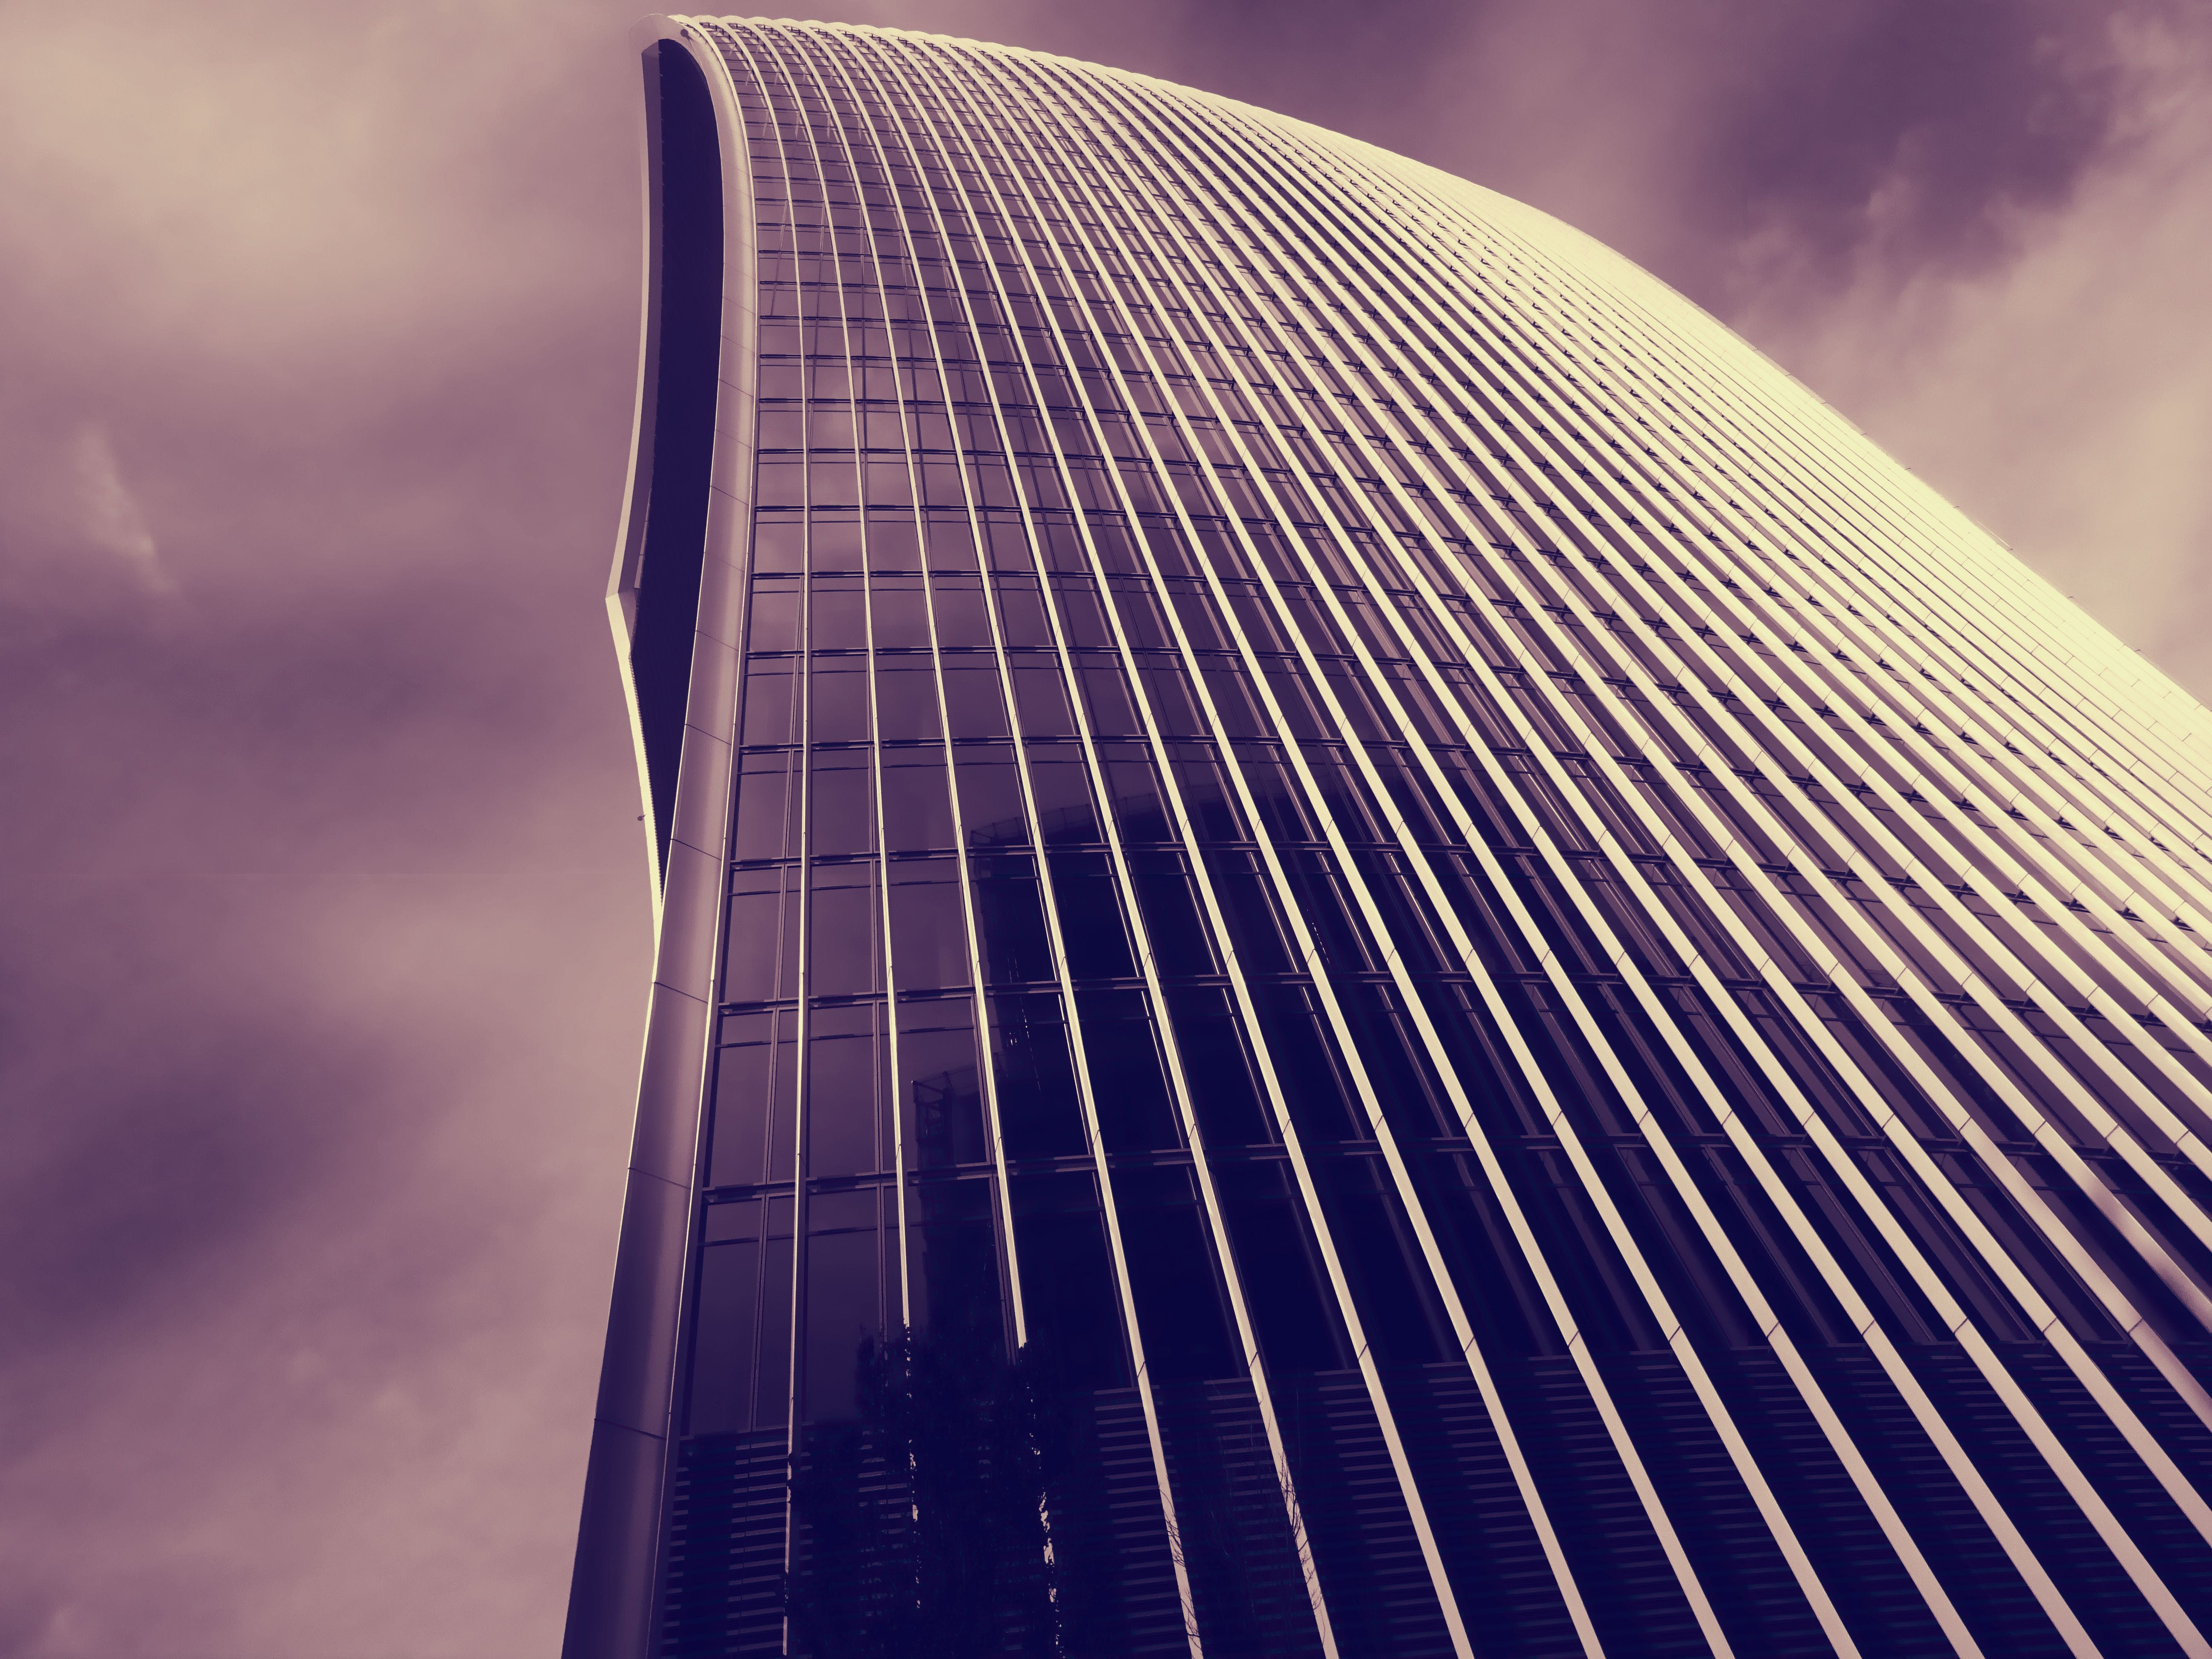 Low Angle Grayscale Photography of Building